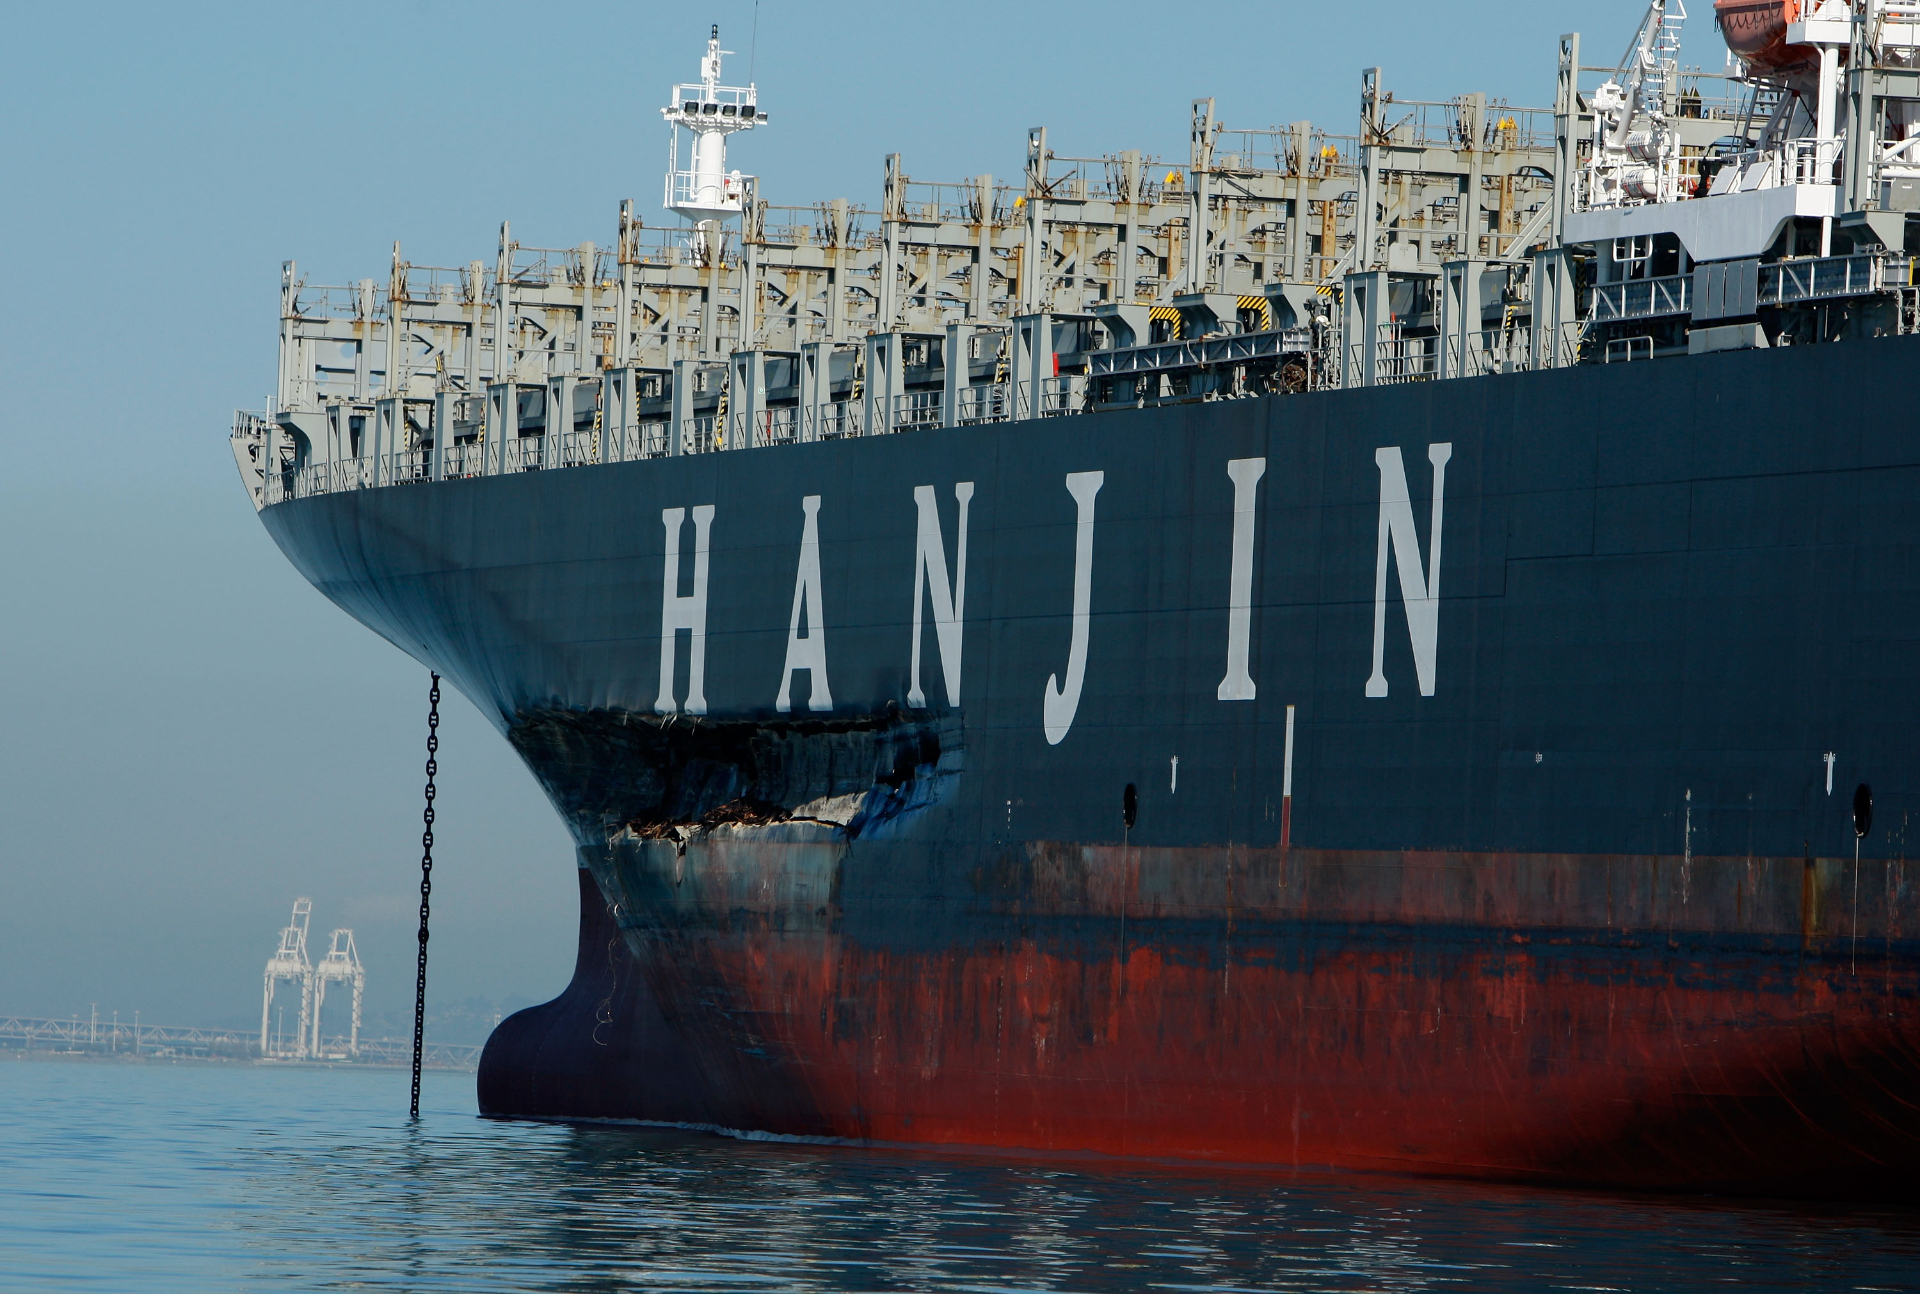 A large oil cargo ship sits in water with obvious damage to its hull.